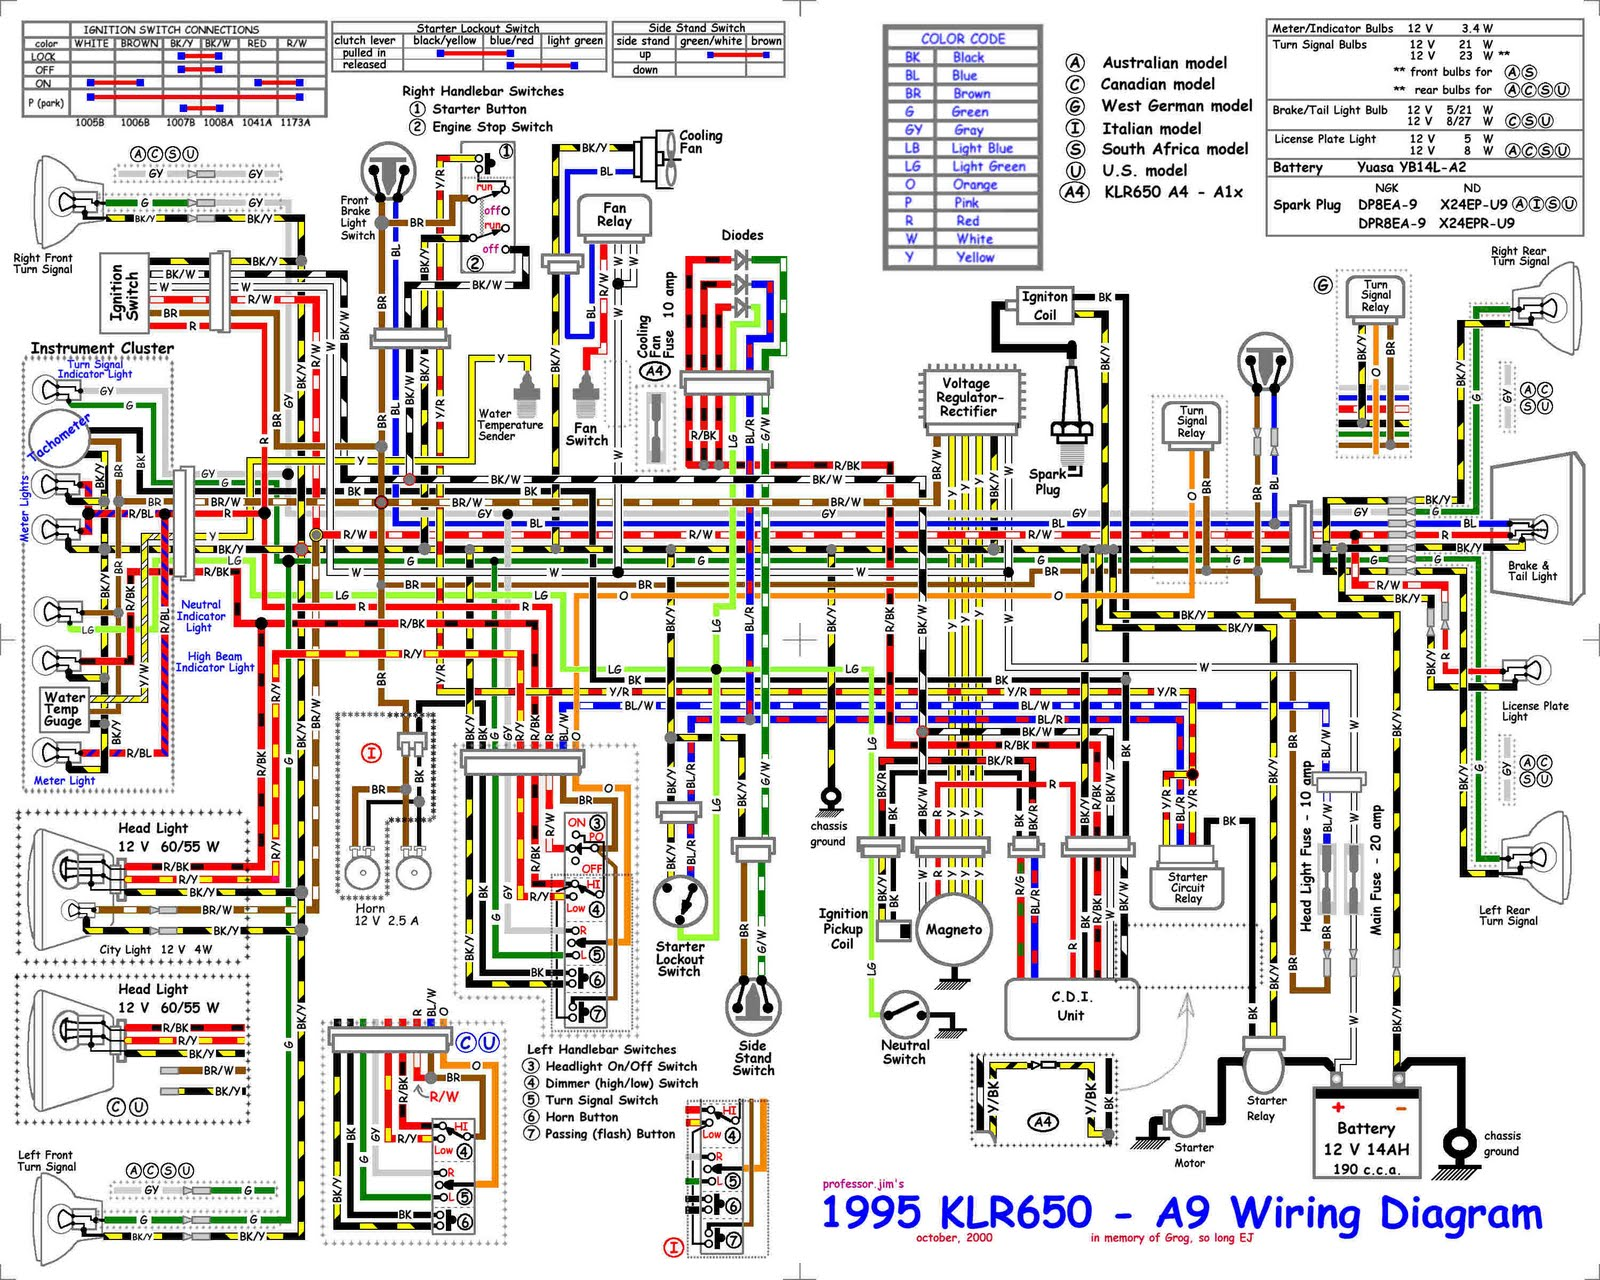 1974 monte carlo wiring diagram auto wiring diagrams premium automotive electrical wiring diagrams understanding automotive wiring diagrams at gsmx.co